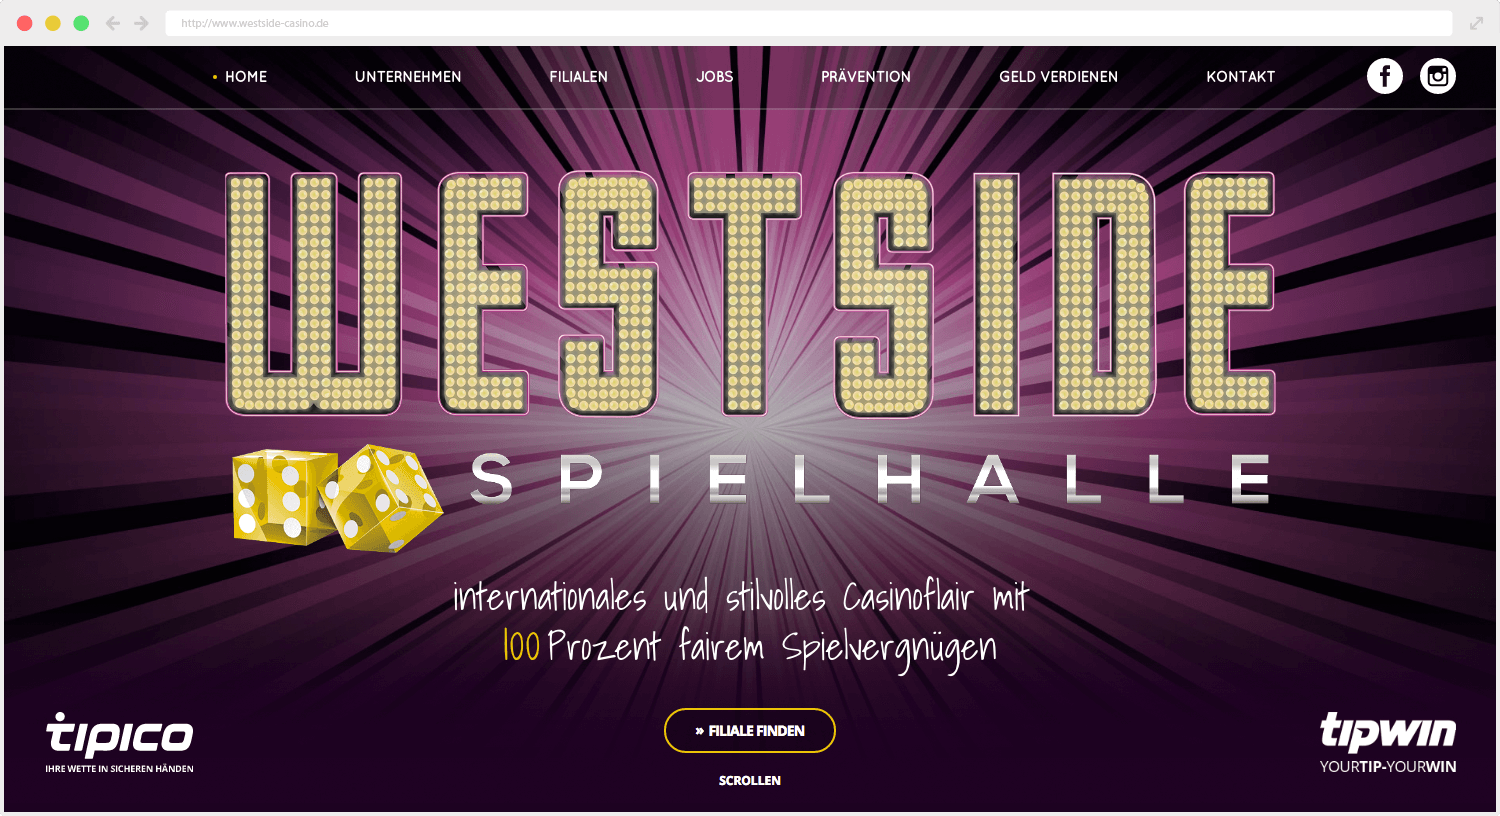 Westside Casino Webseite